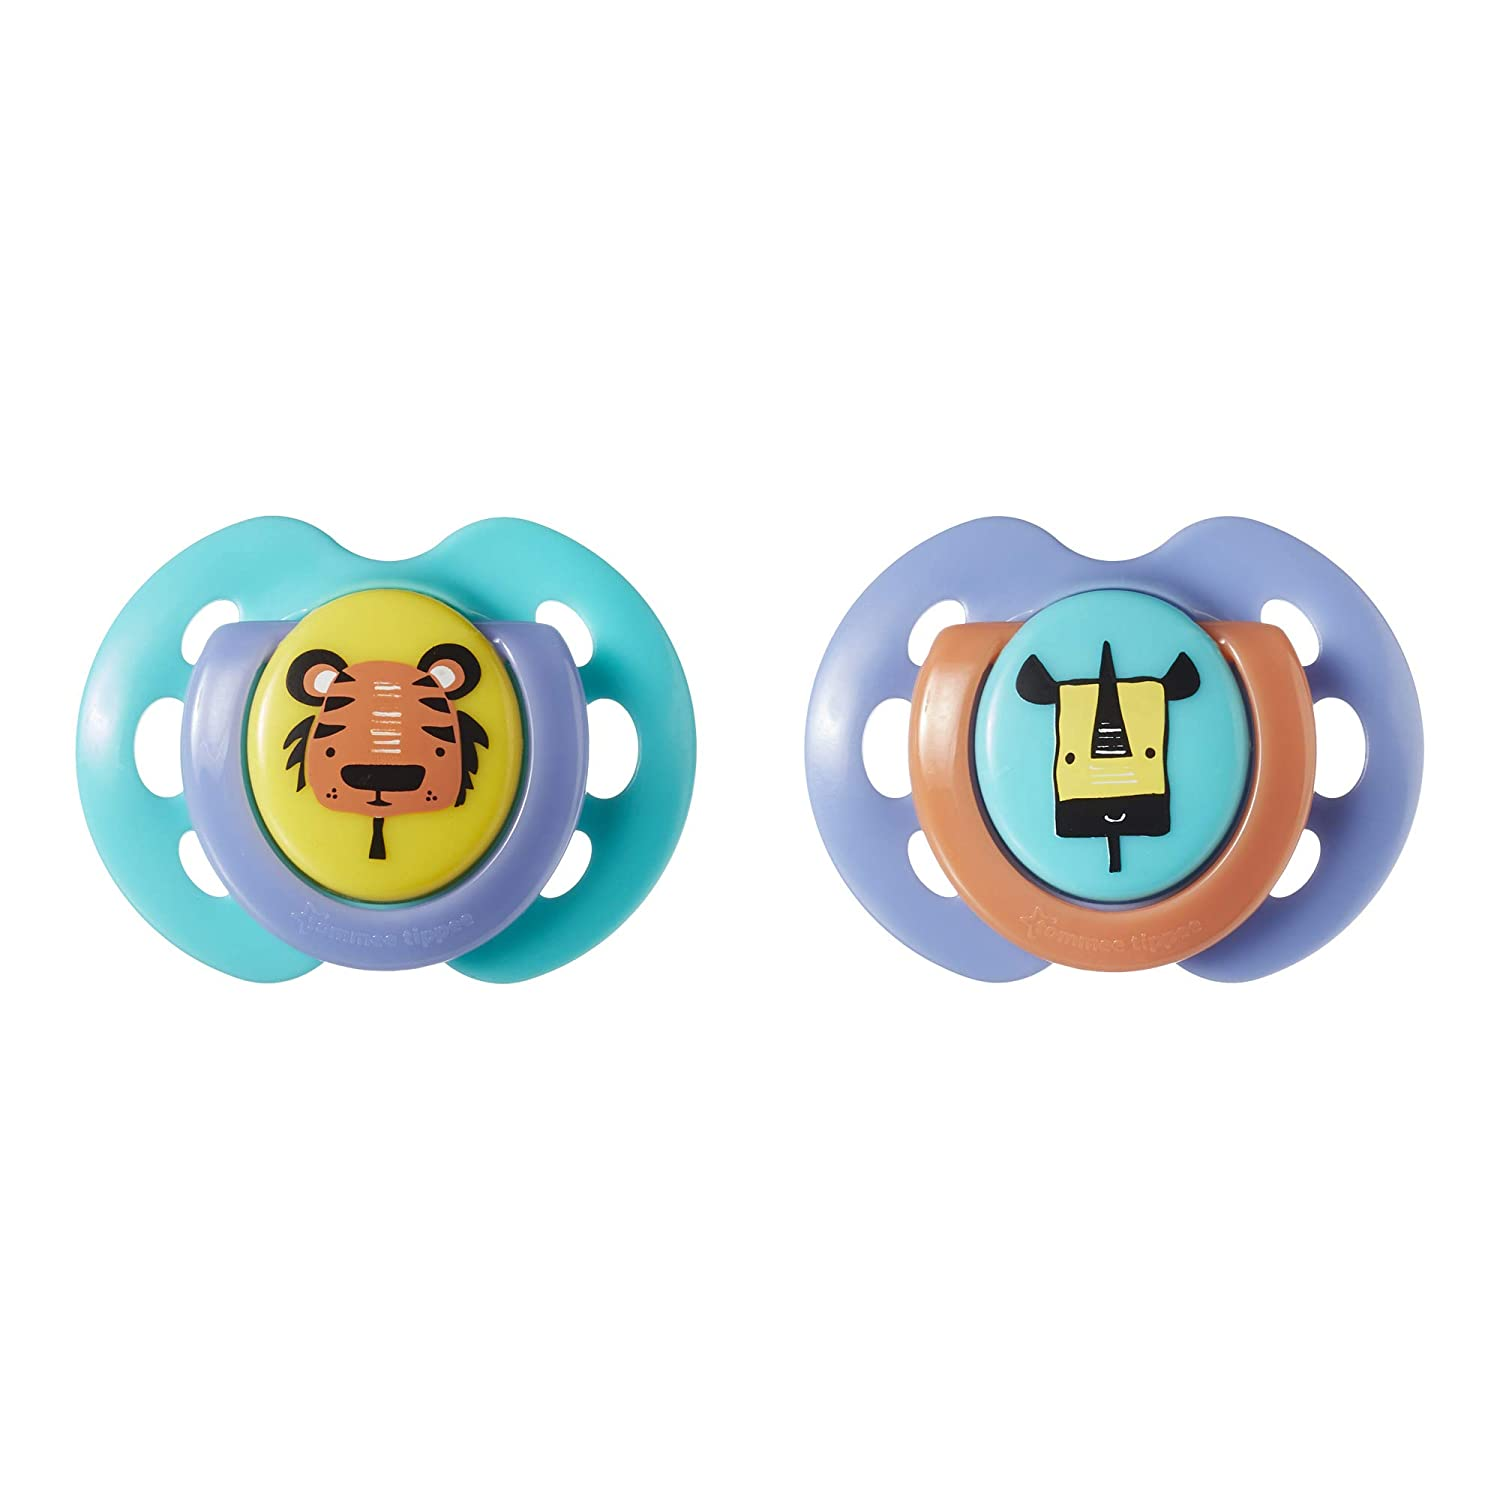 Tommee Tippee Closer to Nature Fun Style Baby Pacifier, BPA-Free, 0-6 Months, 2 Count (Colors May Vary)